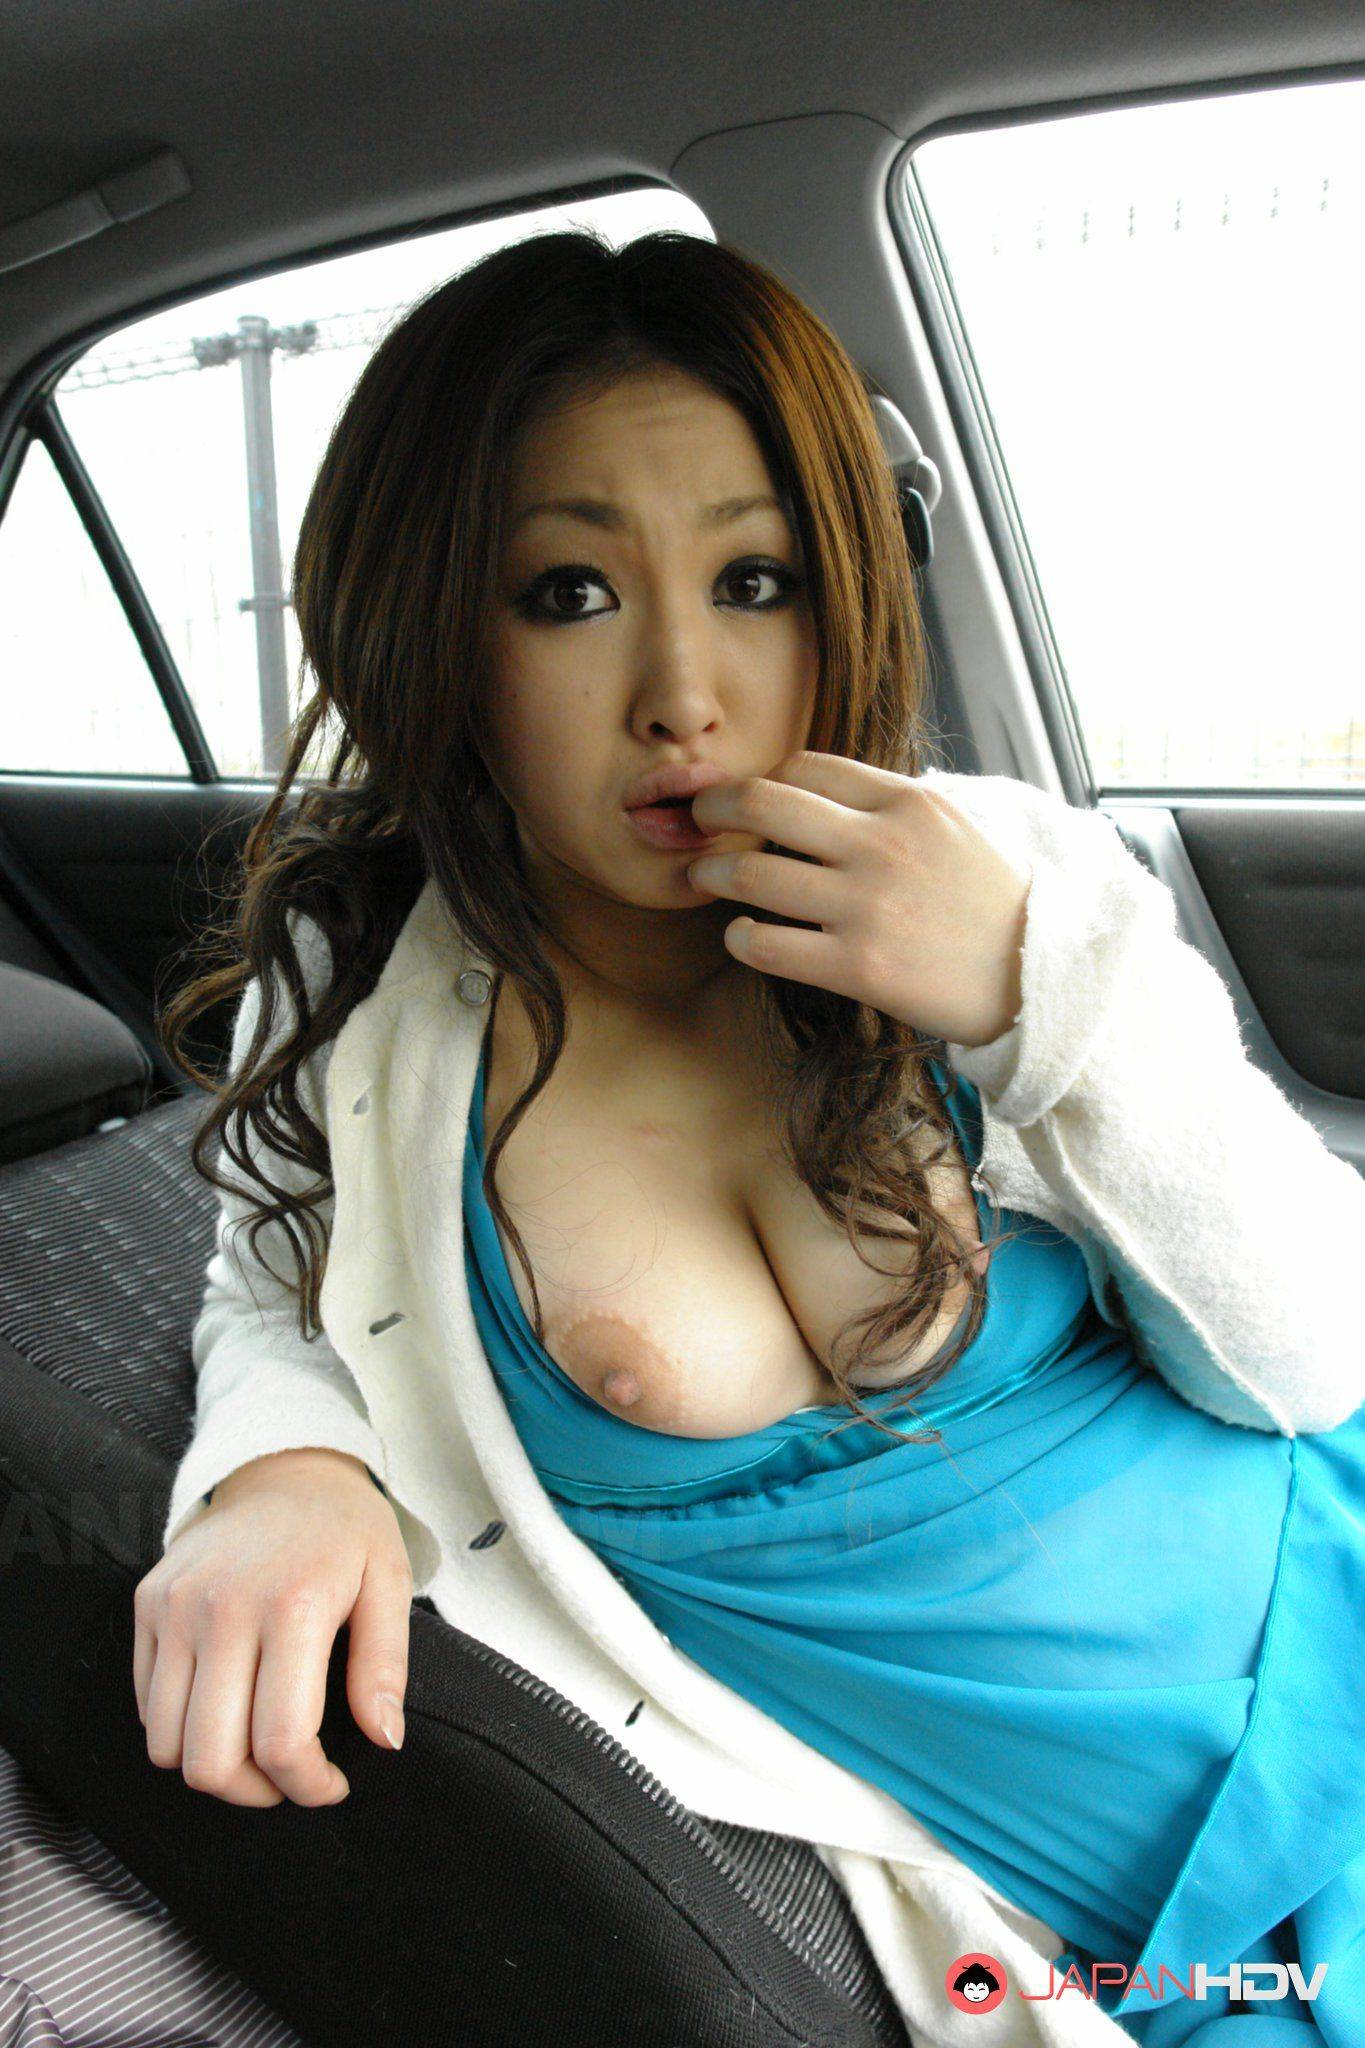 best of Asians cars Hot nude by